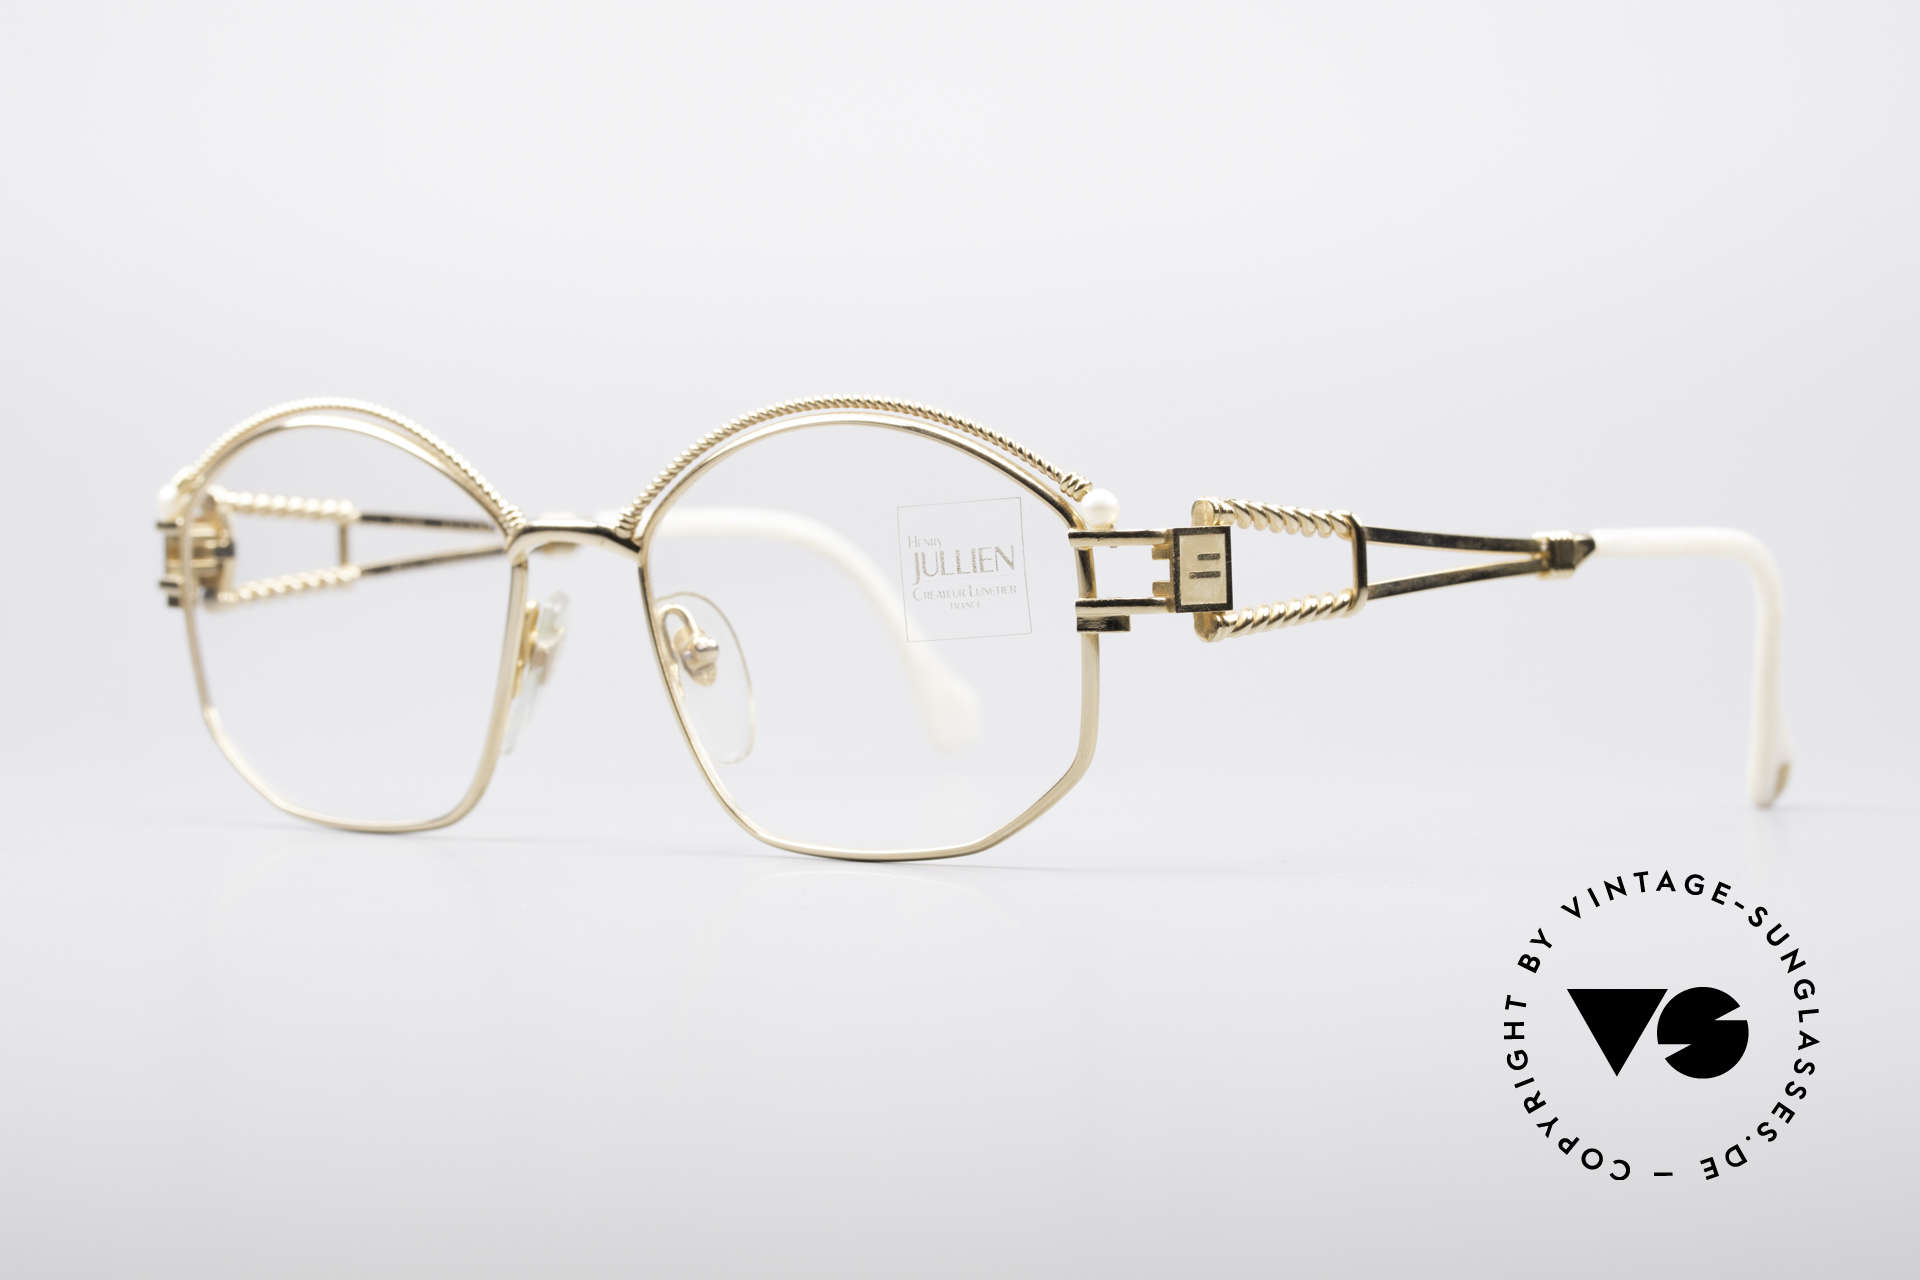 Henry Jullien Cizeta Jewellery Gold Frame, furthermore decorated with two real pearls, pure luxury, Made for Women